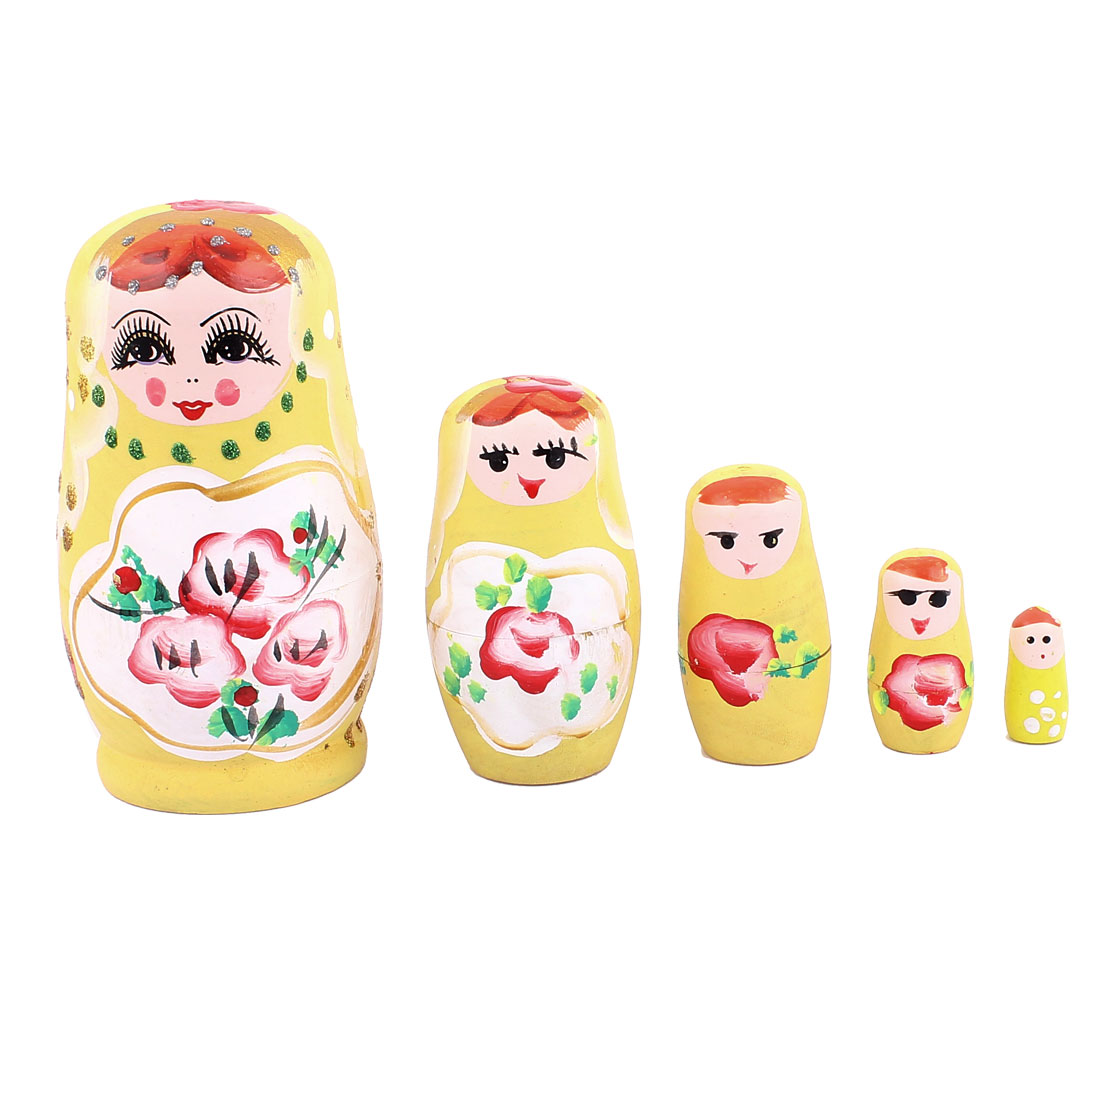 Russian Babushka Flowers Painted Nesting Matryoshka Doll Yellow 5 in 1